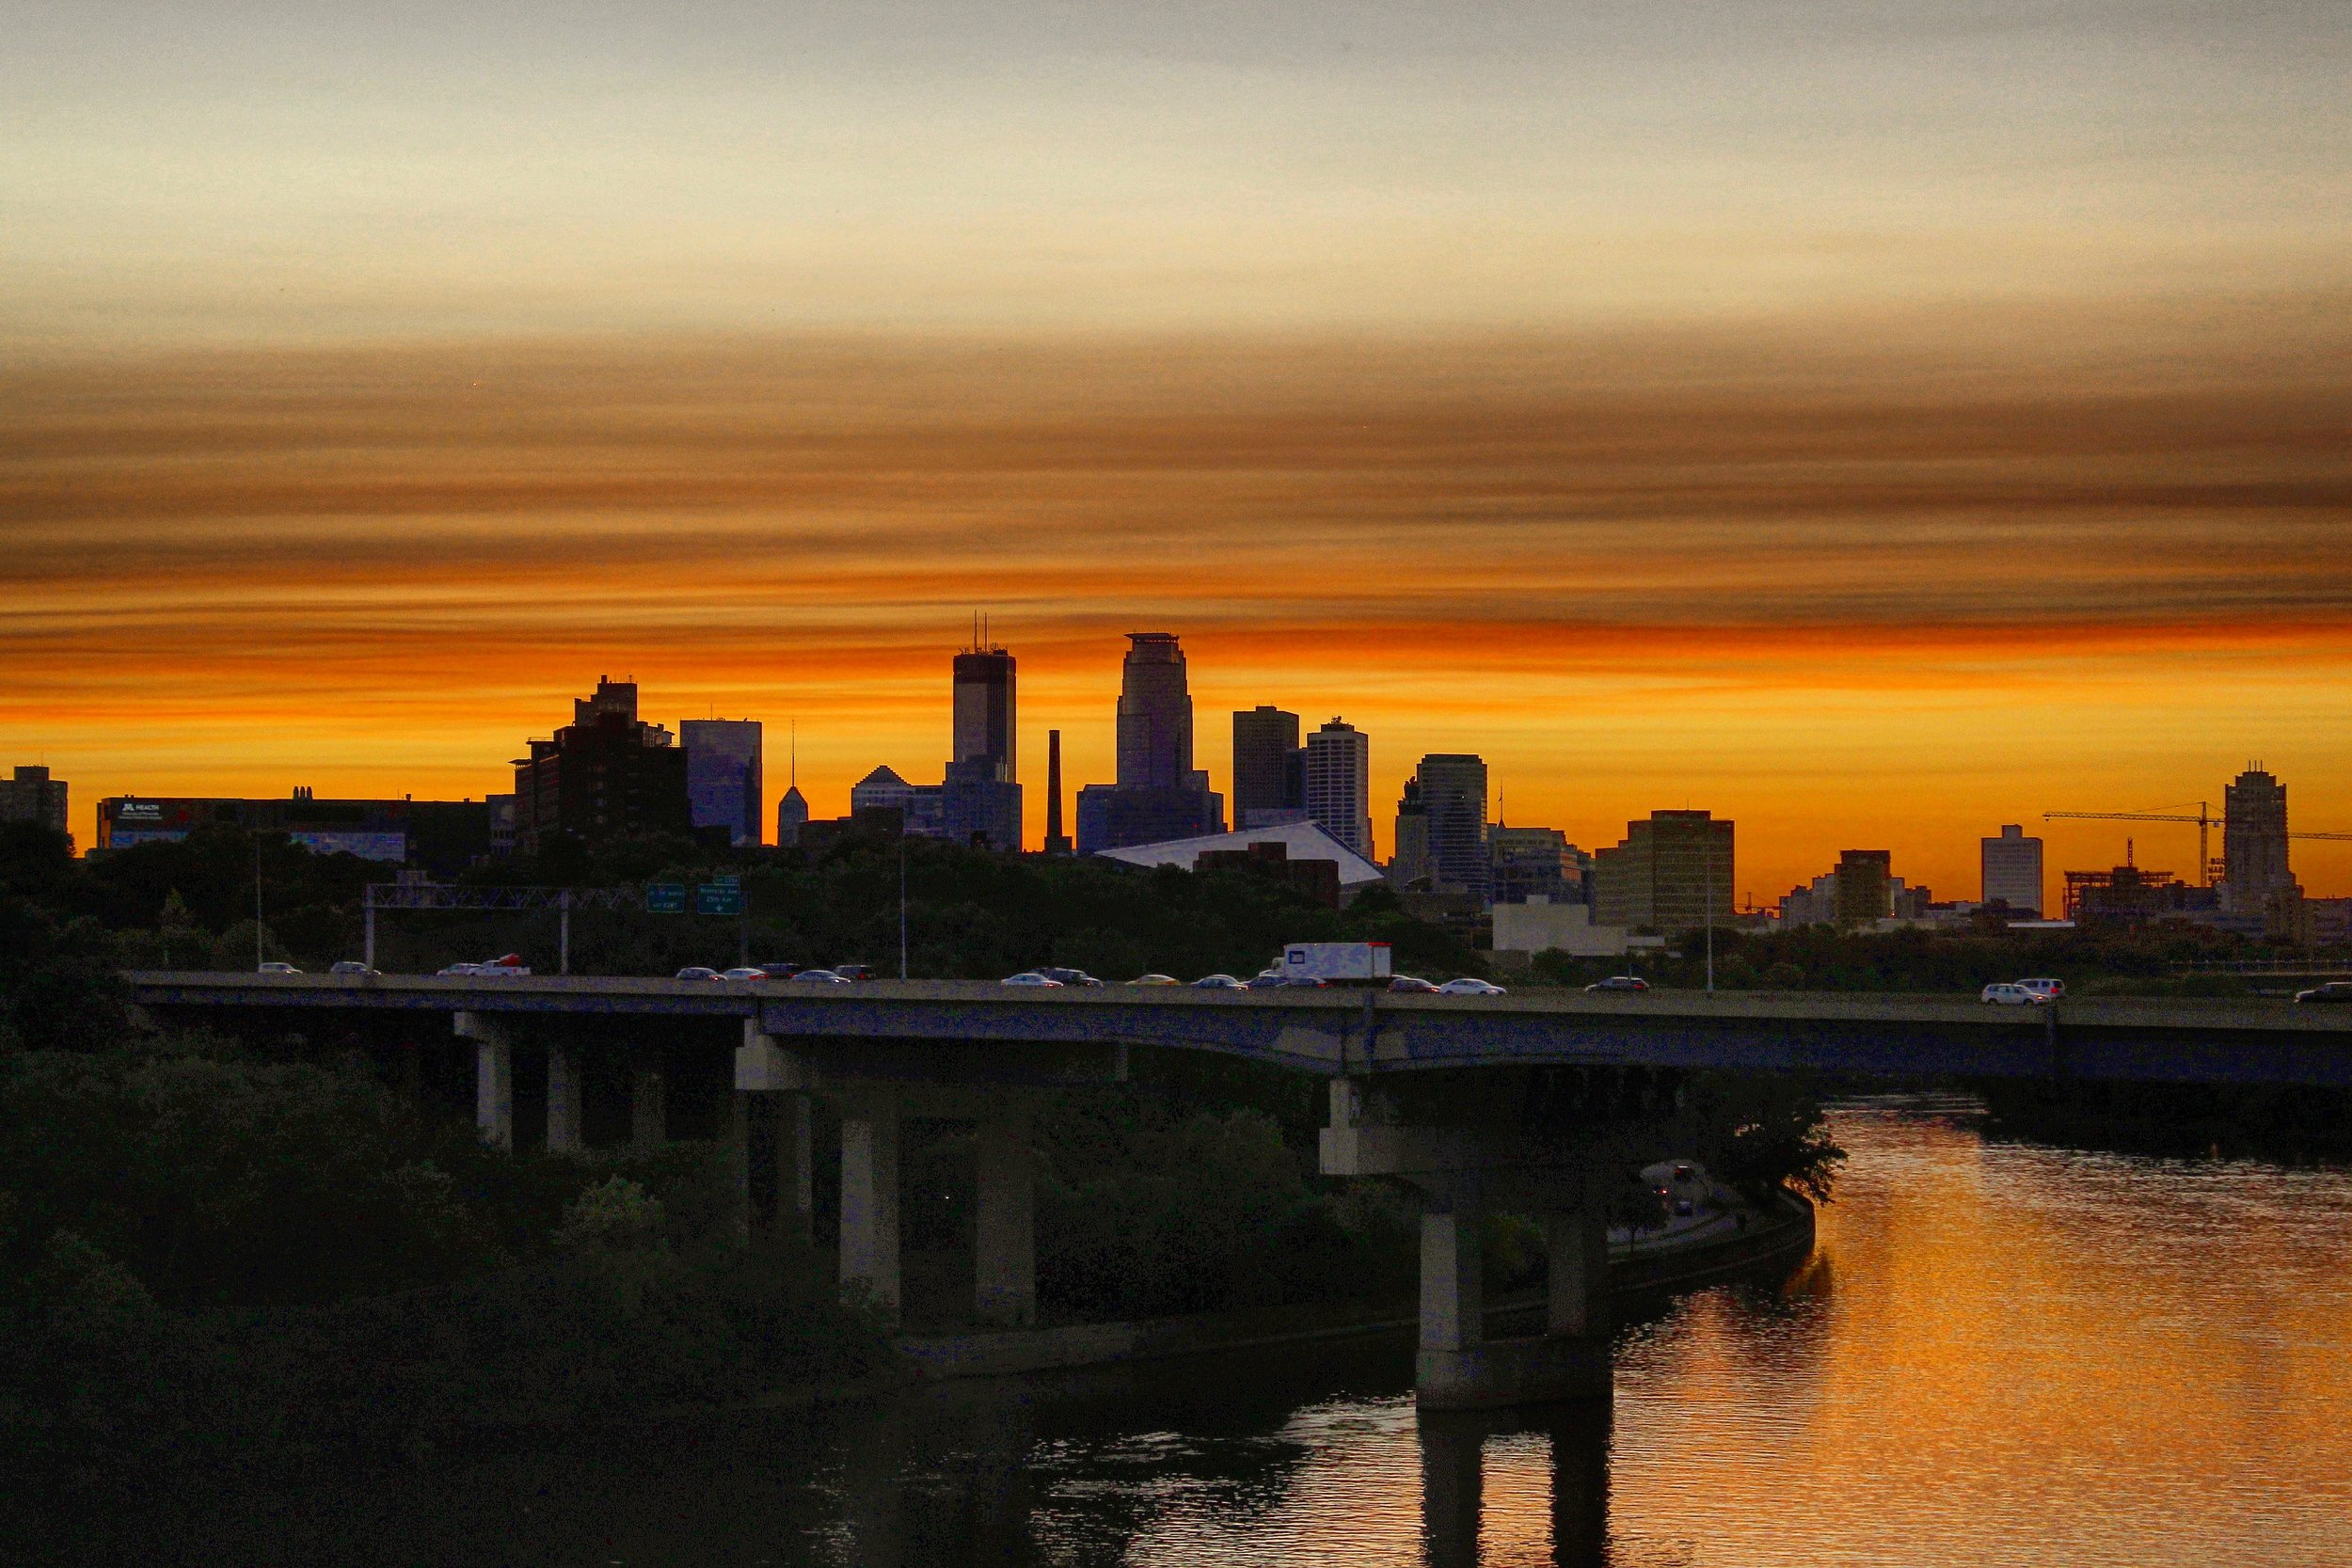 Sunset over downtown from the Franklin Ave bridge